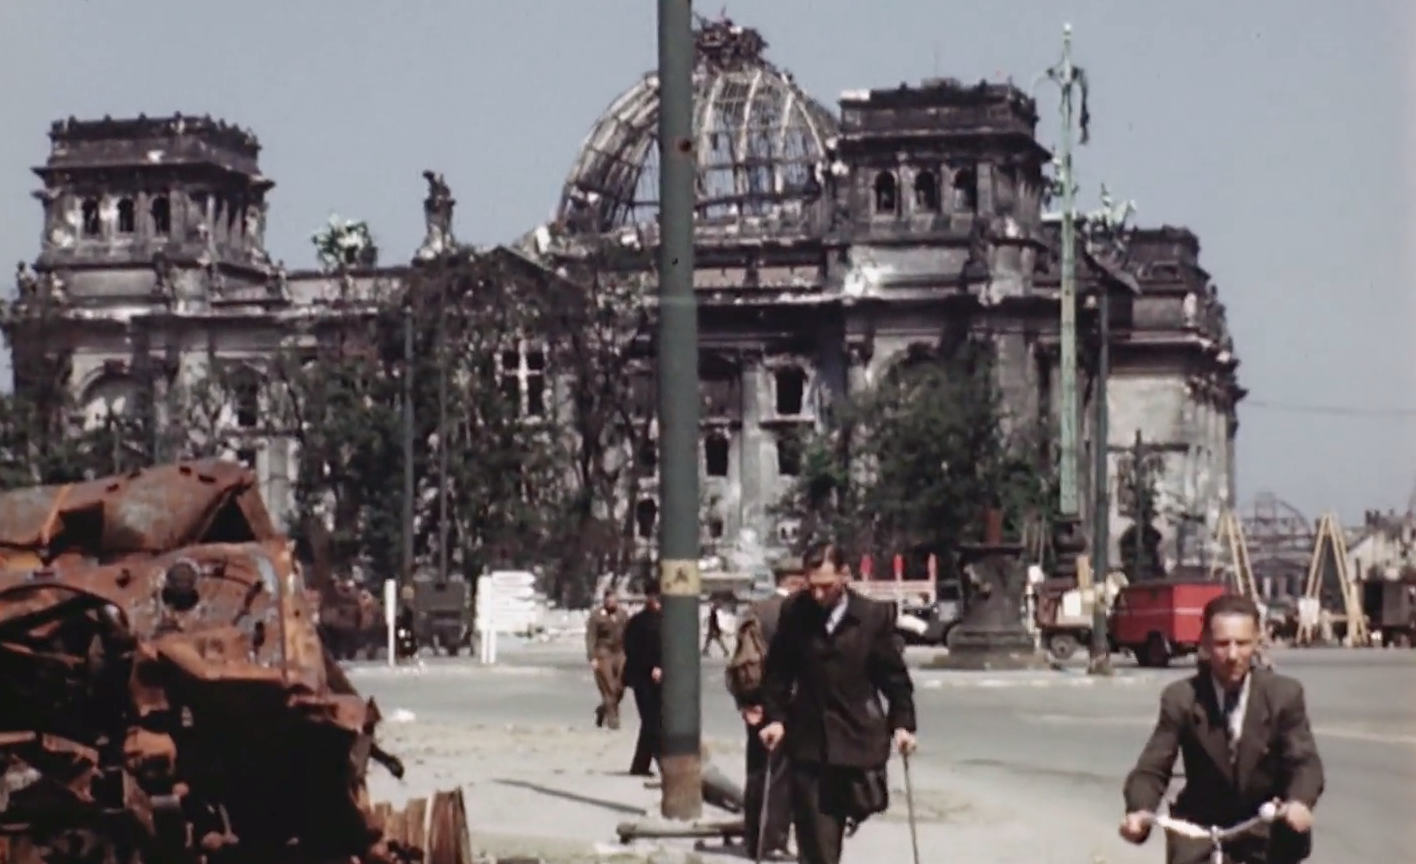 Striking Color Film Footage Of Berlin In July, 1945 Shows How Much The City Was Destroyed In WWII